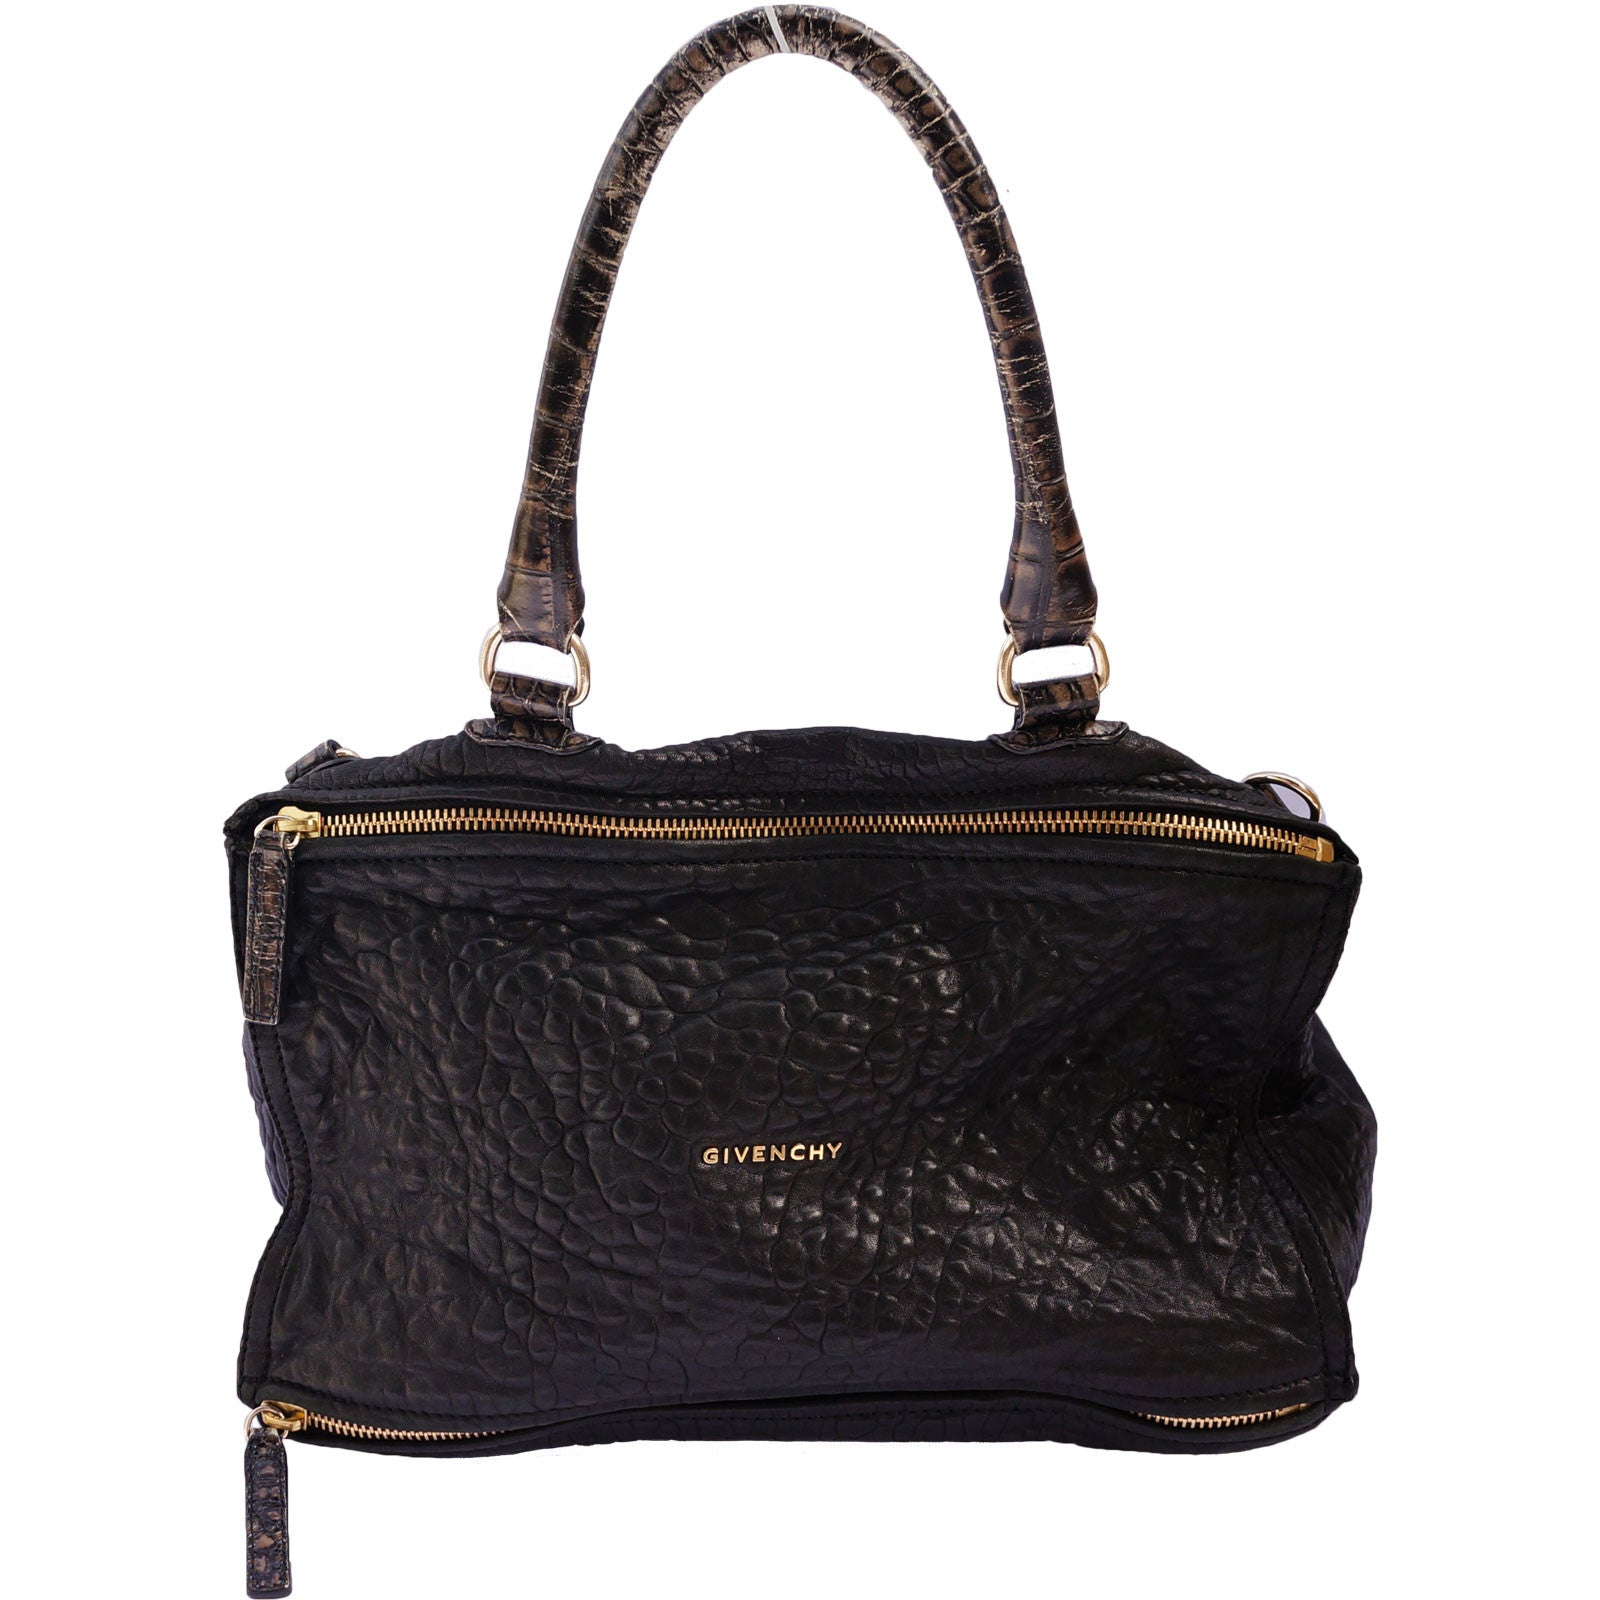 8442b090556 GIVENCHY LARGE PANDORA SATCHEL on Leef luxury authentic designer resale  consignment ...